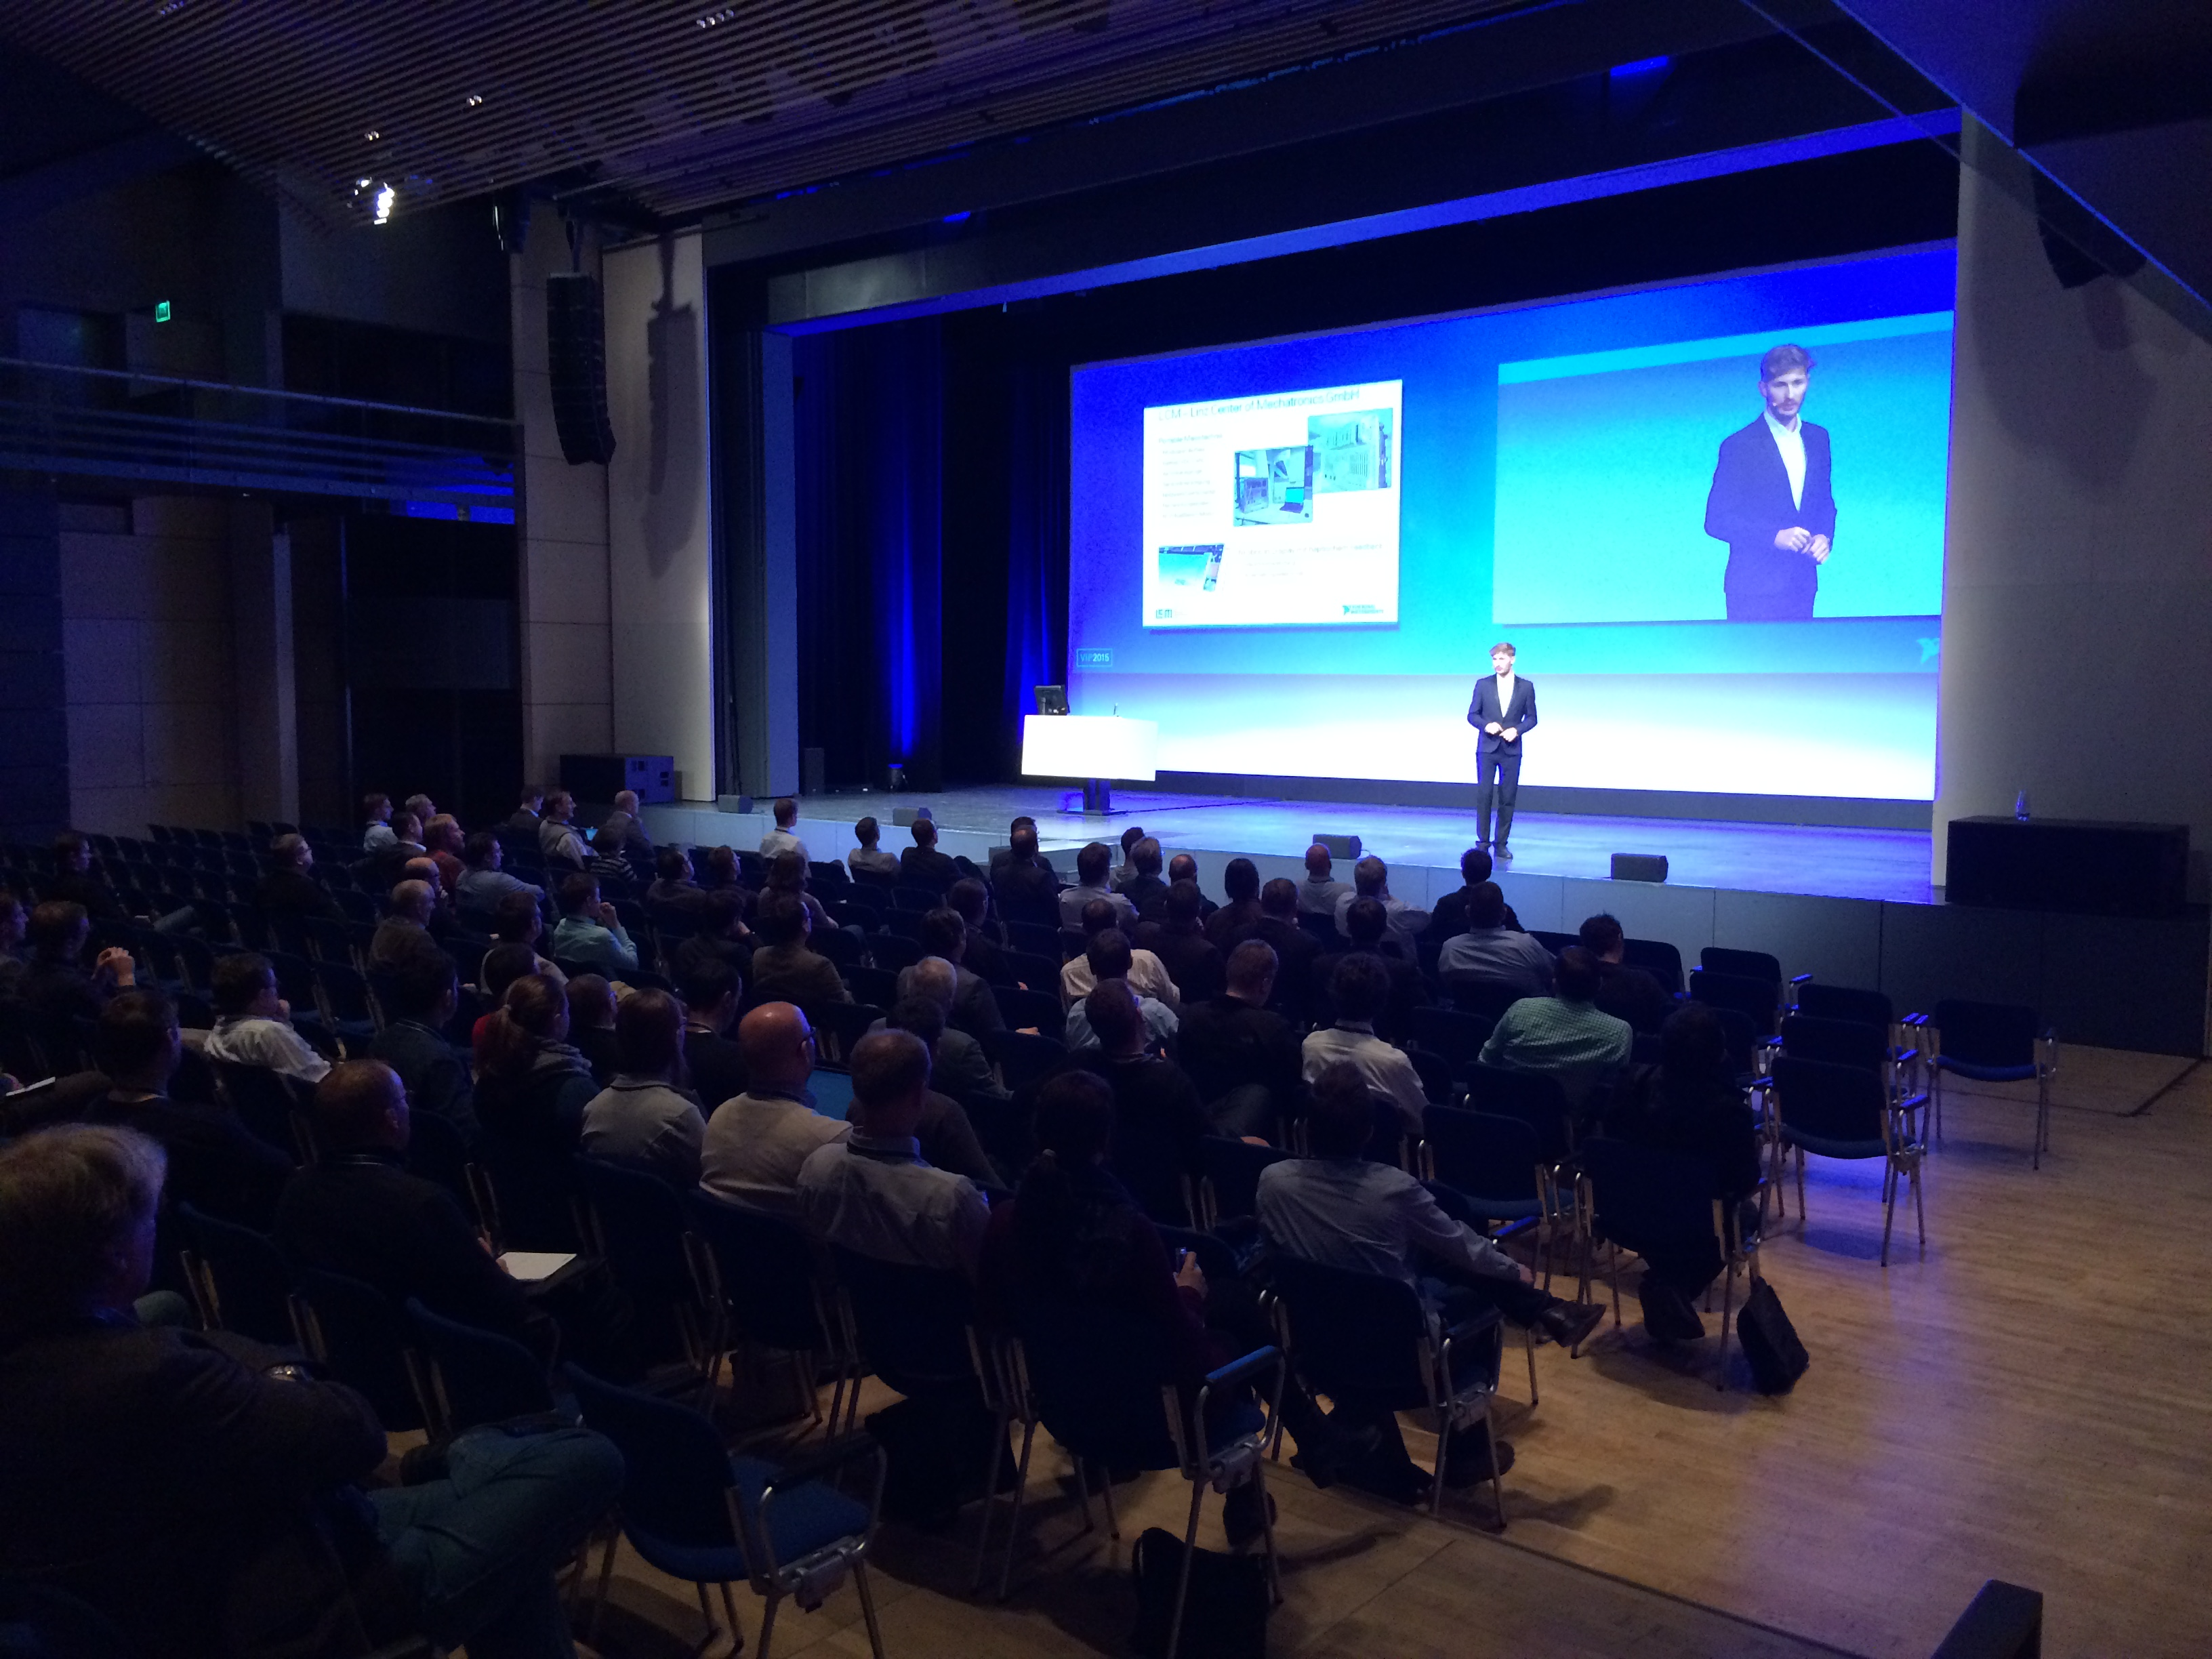 LCM und der National Instruments VIP-Kongress 2015